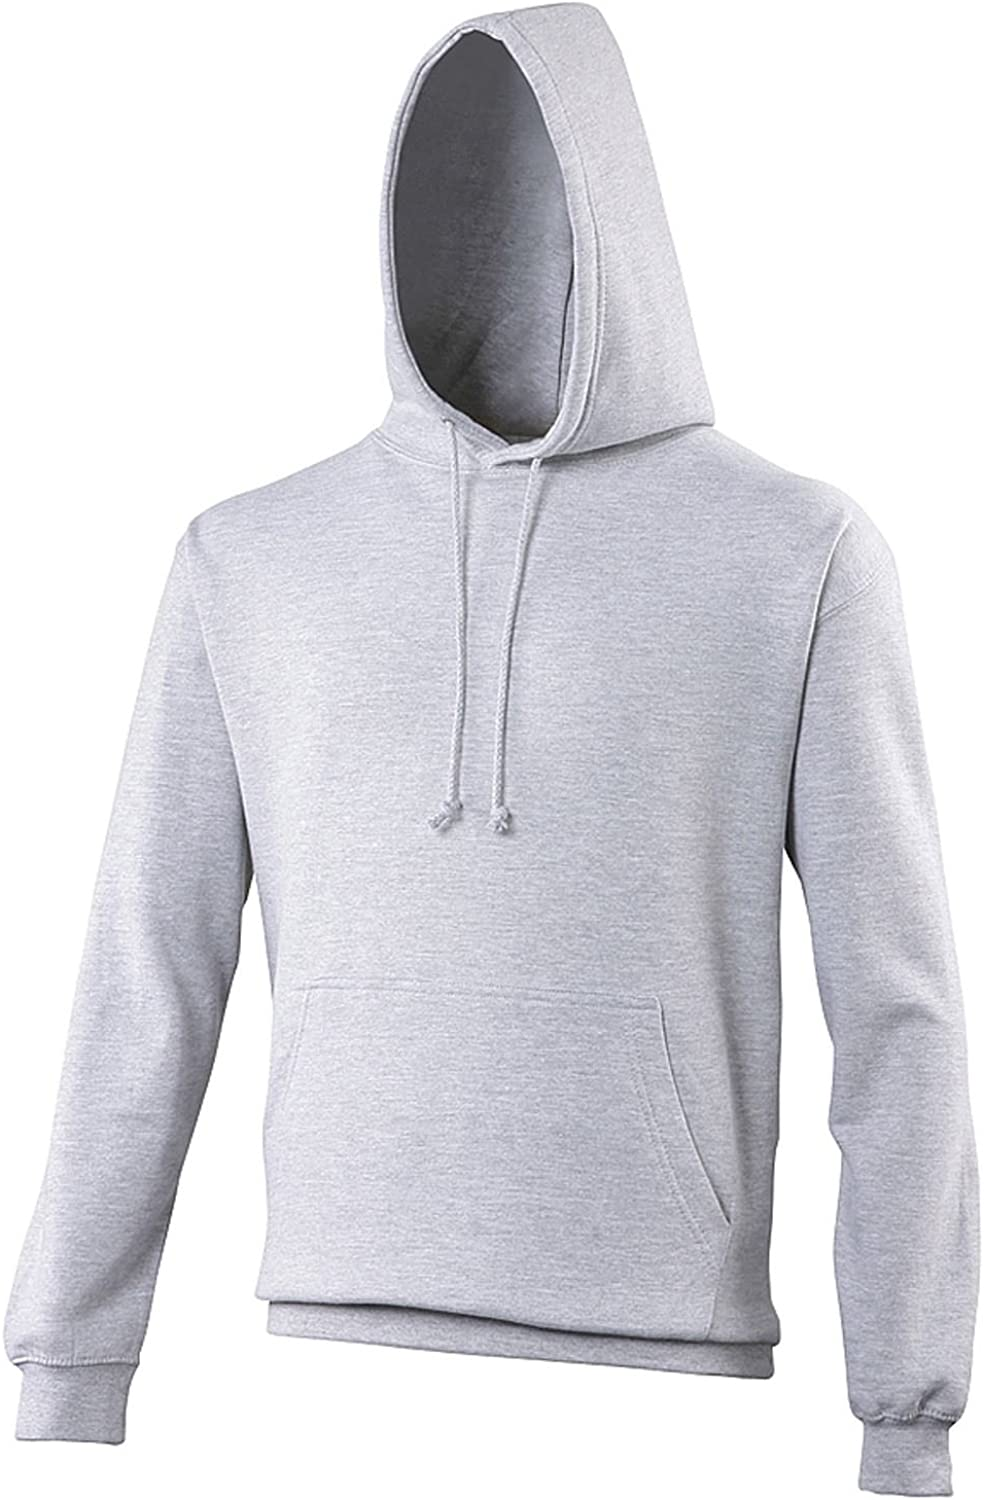 Par Just Hoods AWDis Sweat à capuche College jh001 Heather